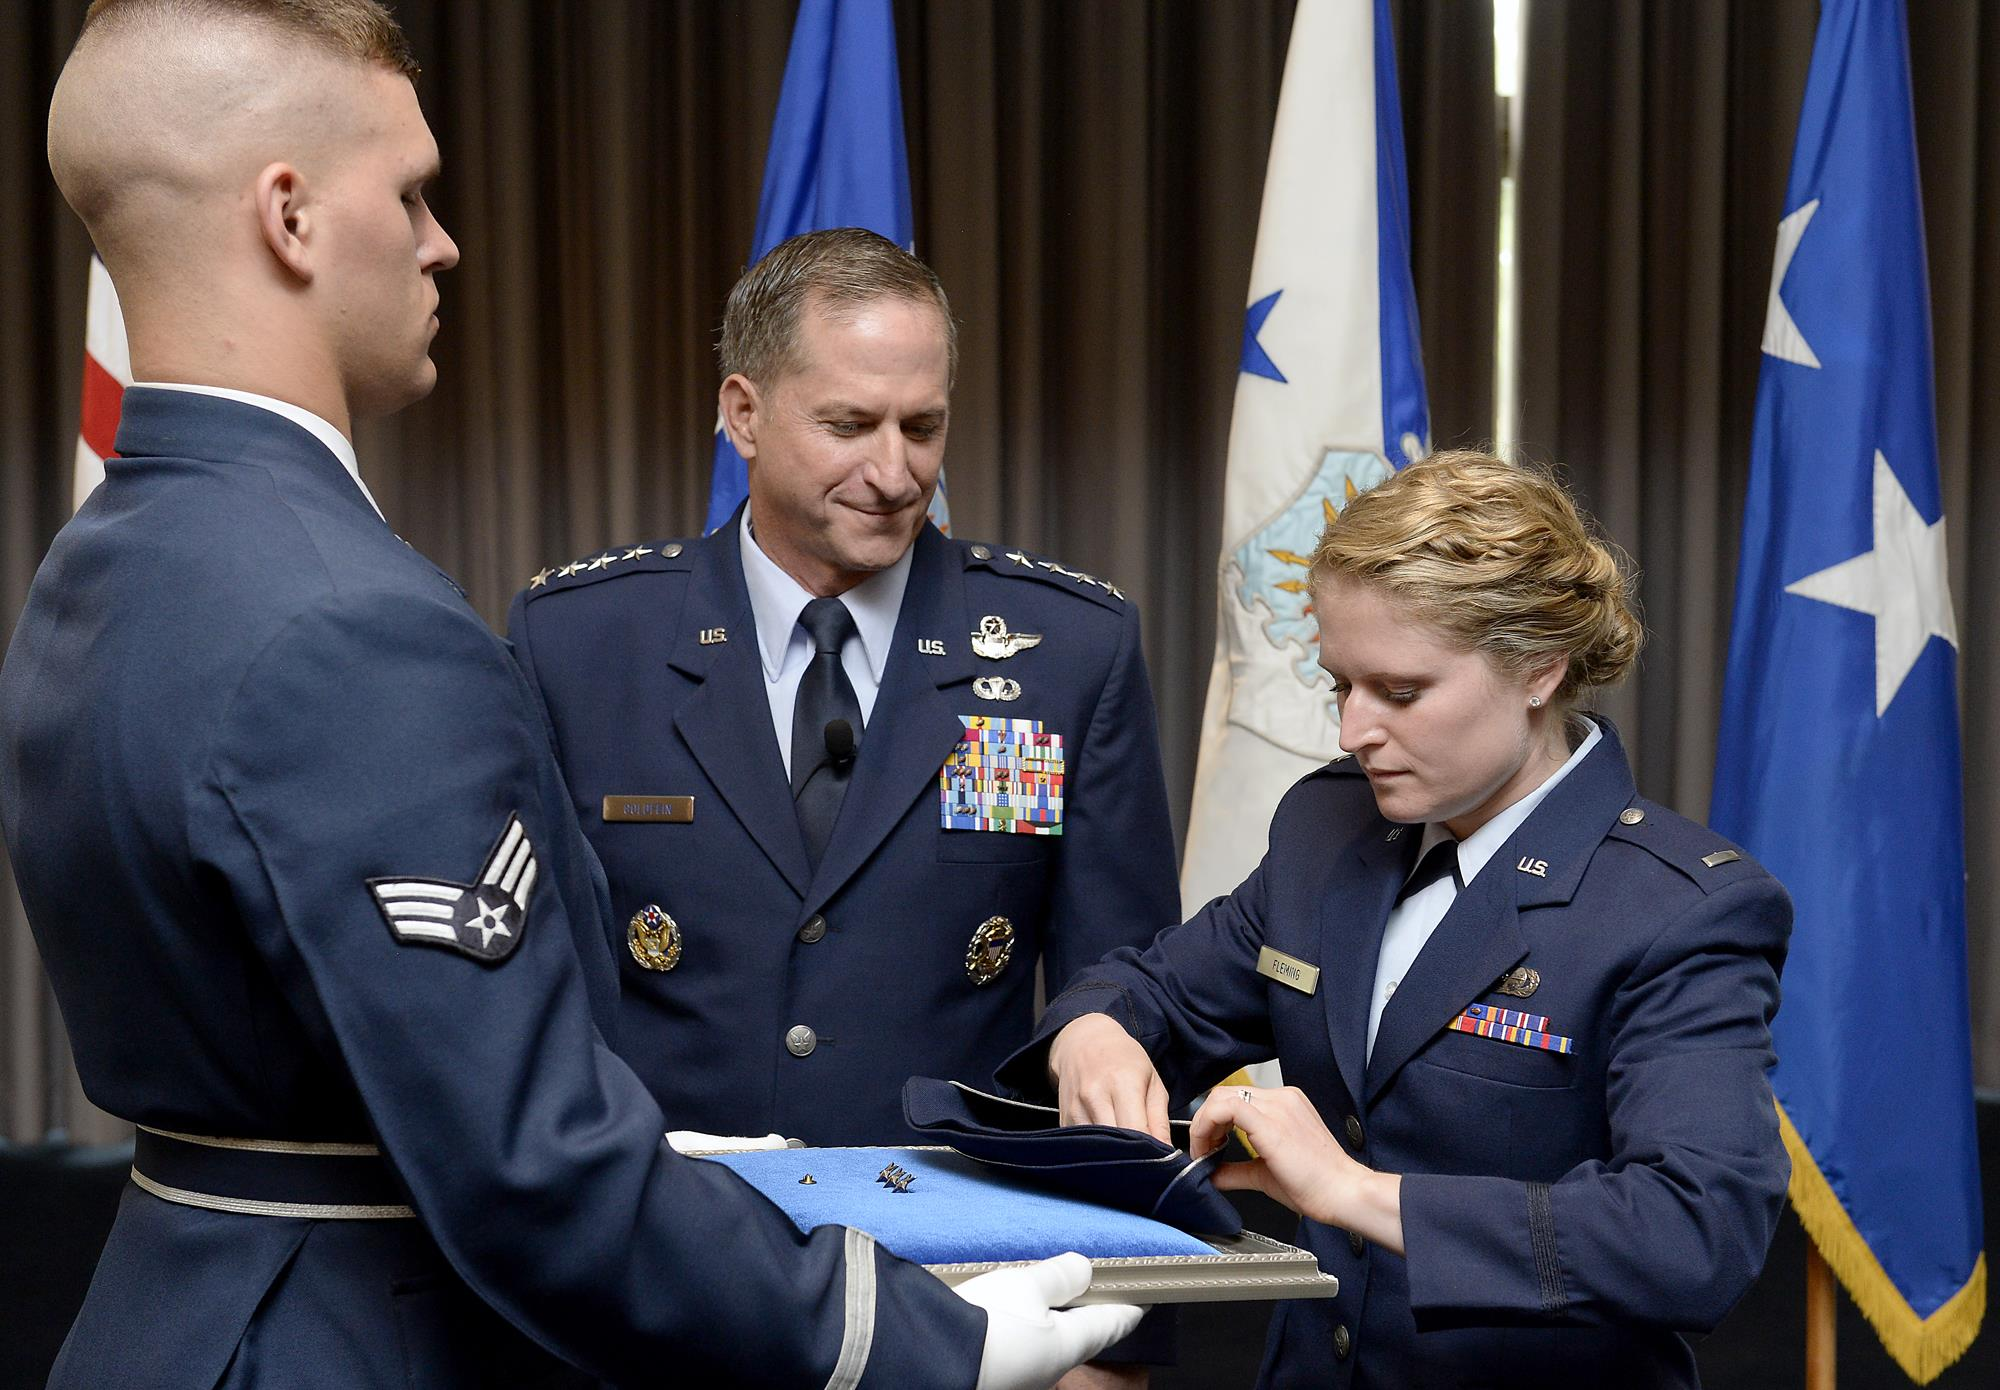 AF welcomes new vice chief of staff